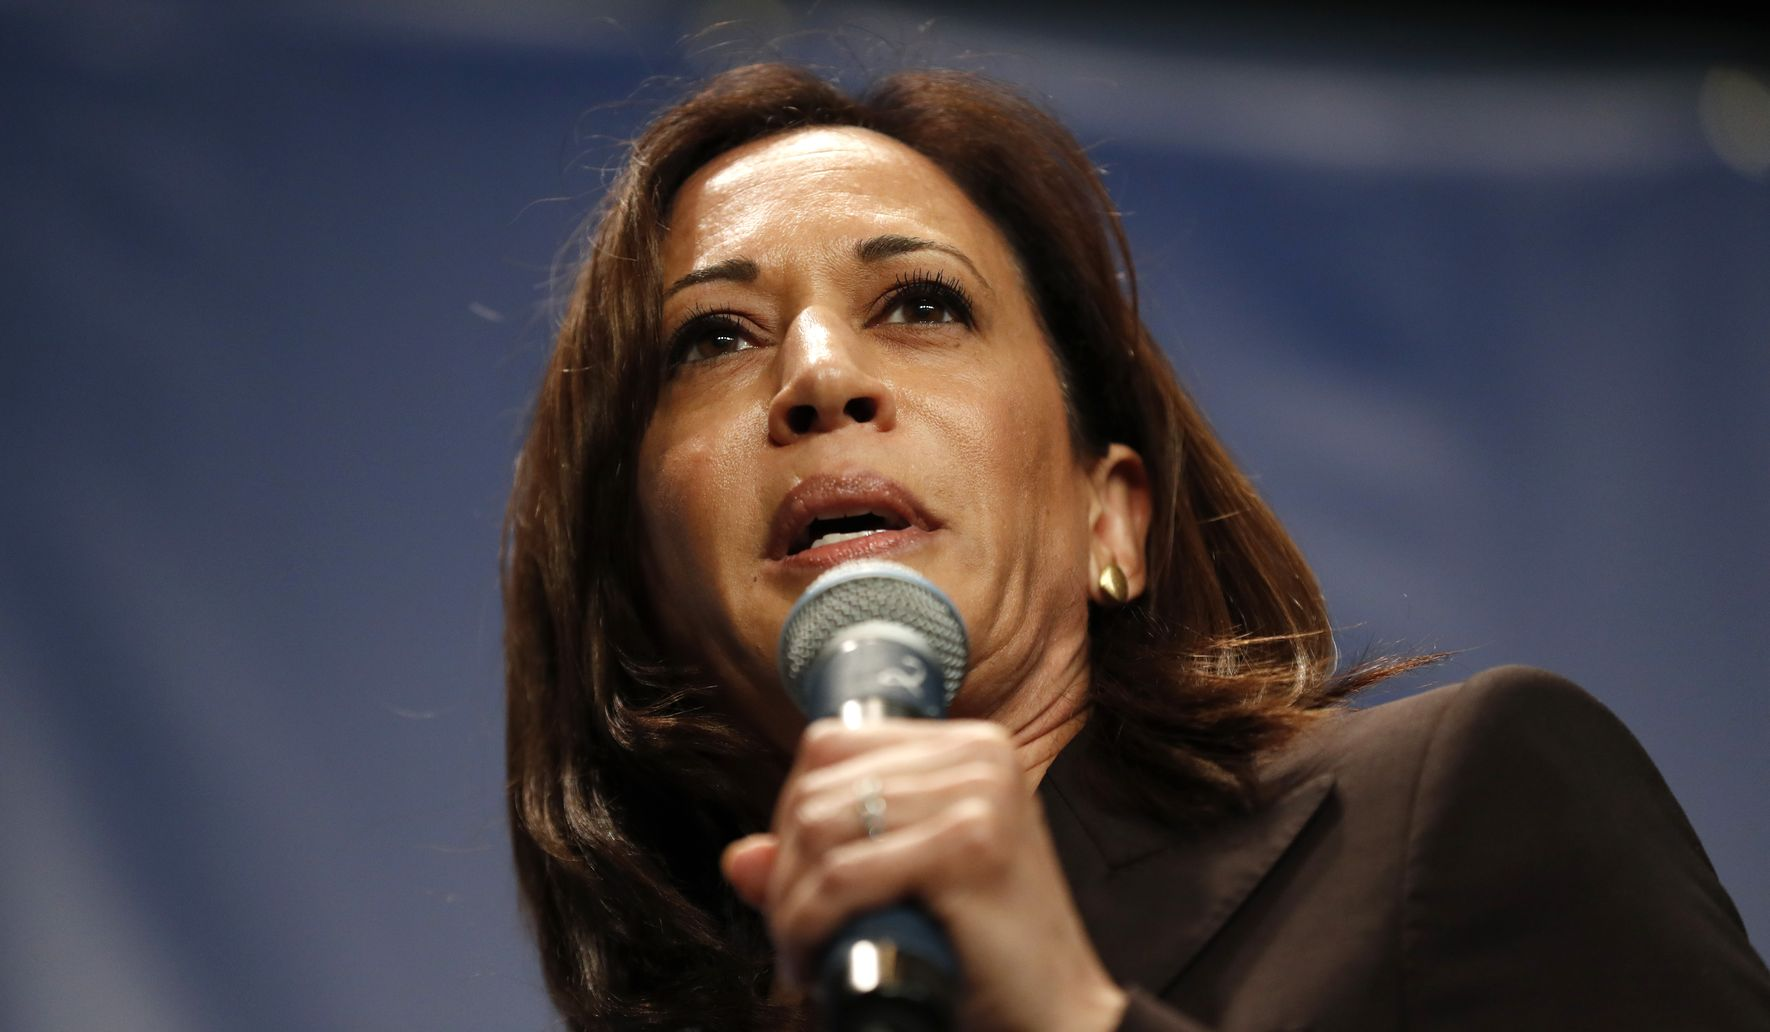 Kamala Harris, presidential candidate, says Russian bots are targeting her White House campaign